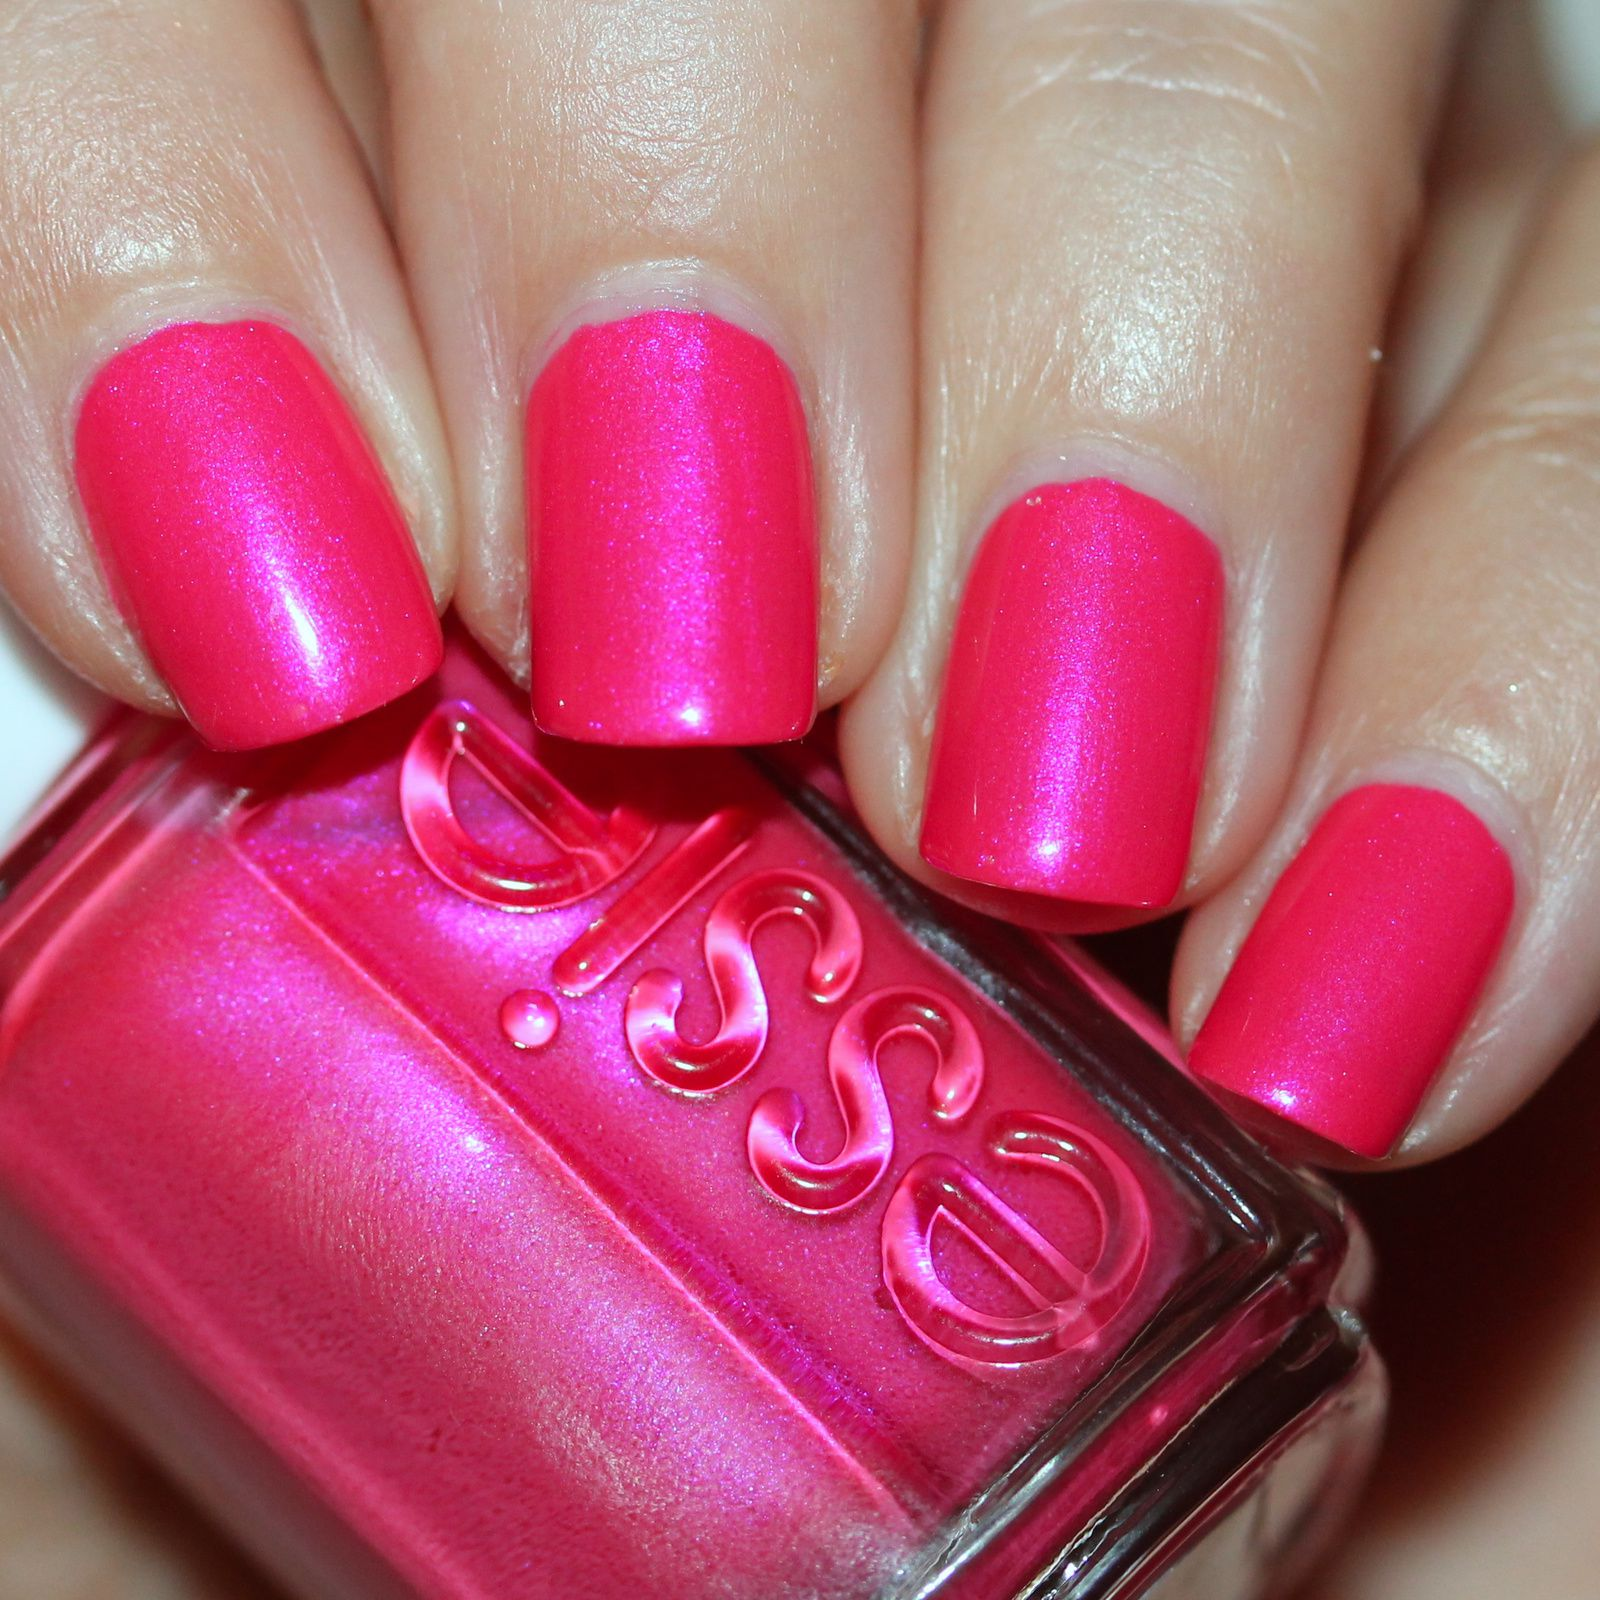 Sally Hansen Complete Care 4-in-1 Extra Moisturizing Nail Treatment / Essie Running in Heels / HK Girl Top Coat